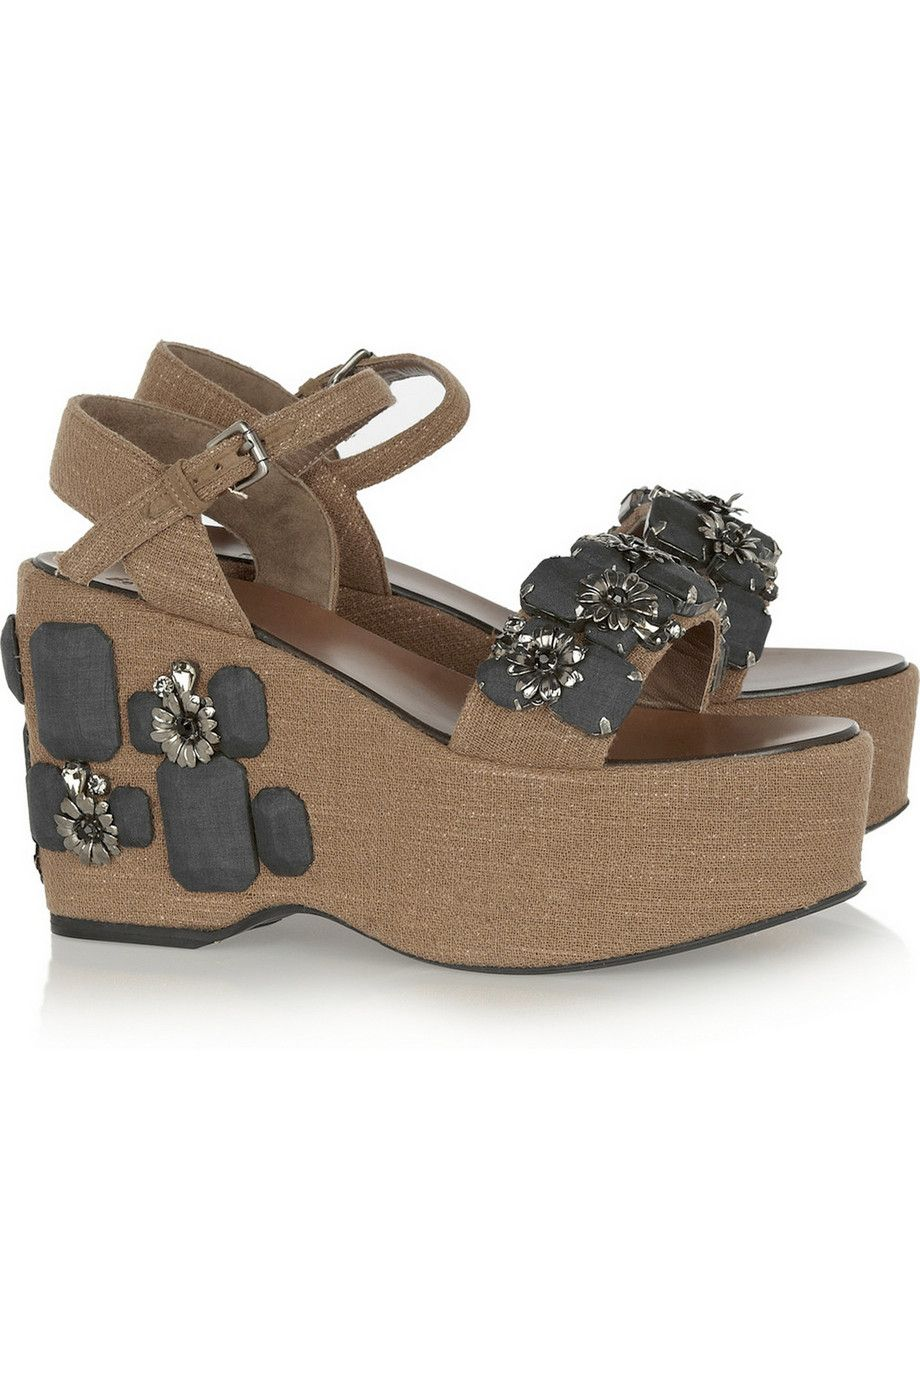 Covered wooden wedge sandals by Marni